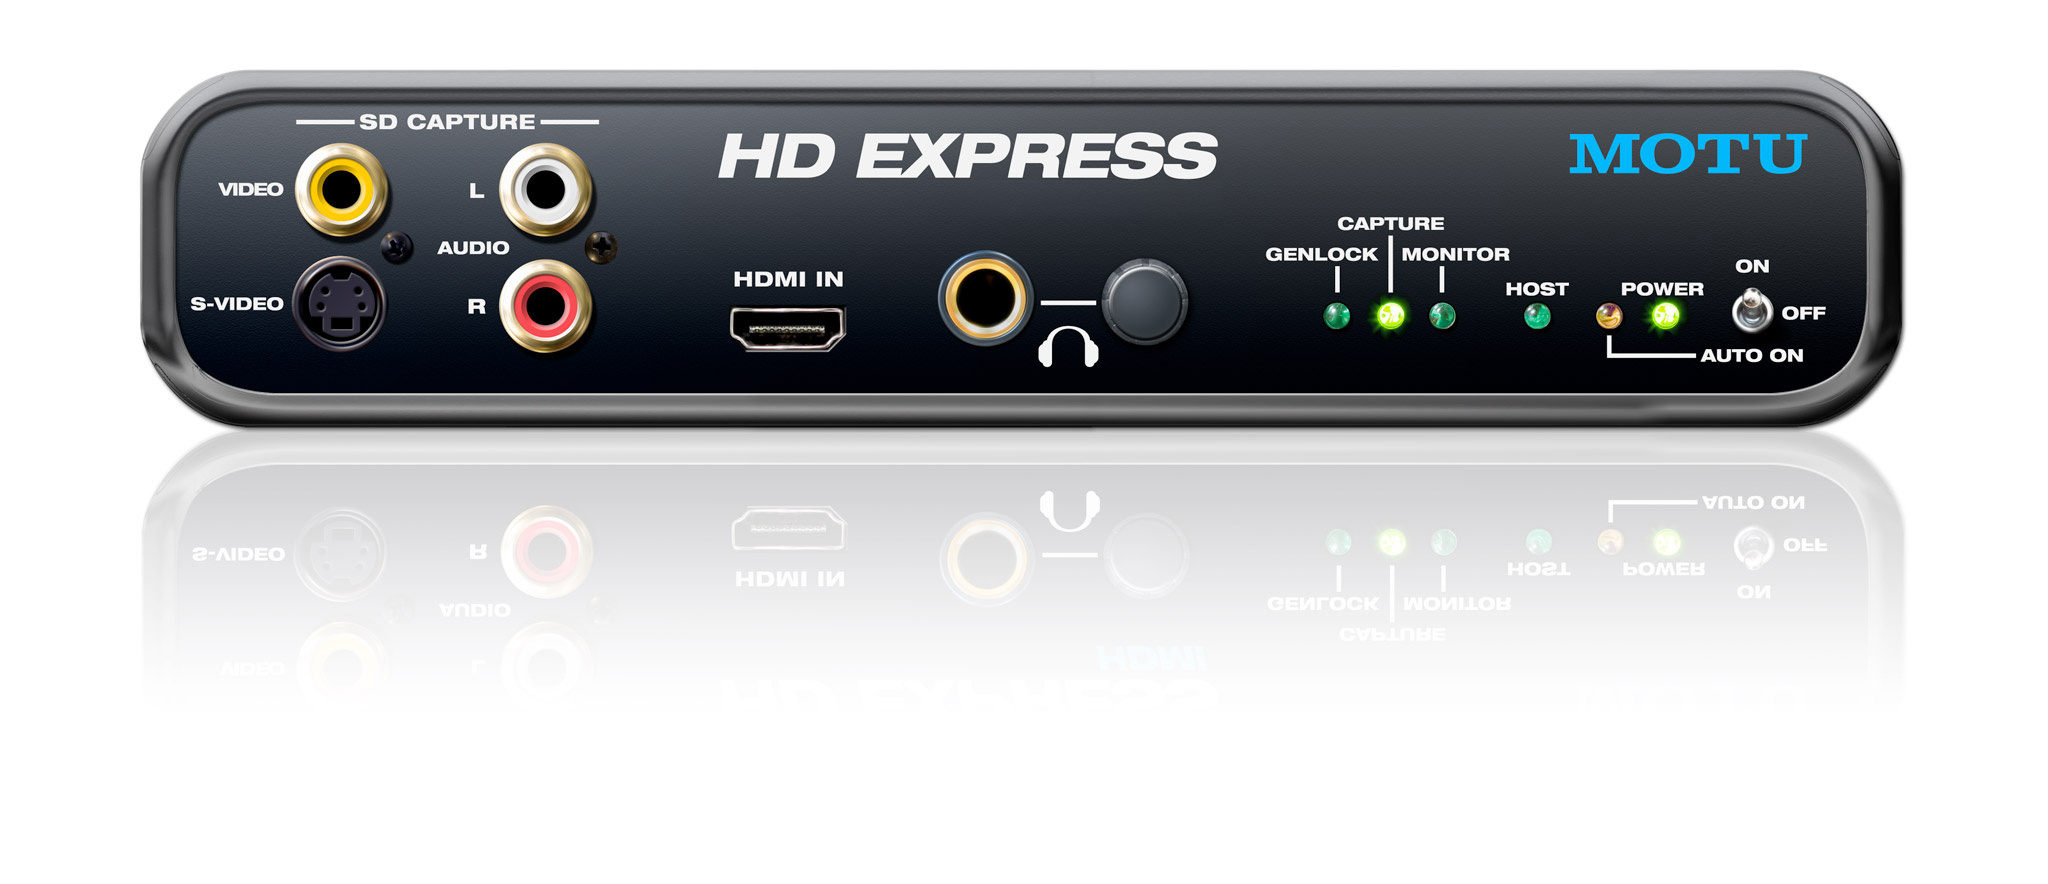 Hd Express Overview